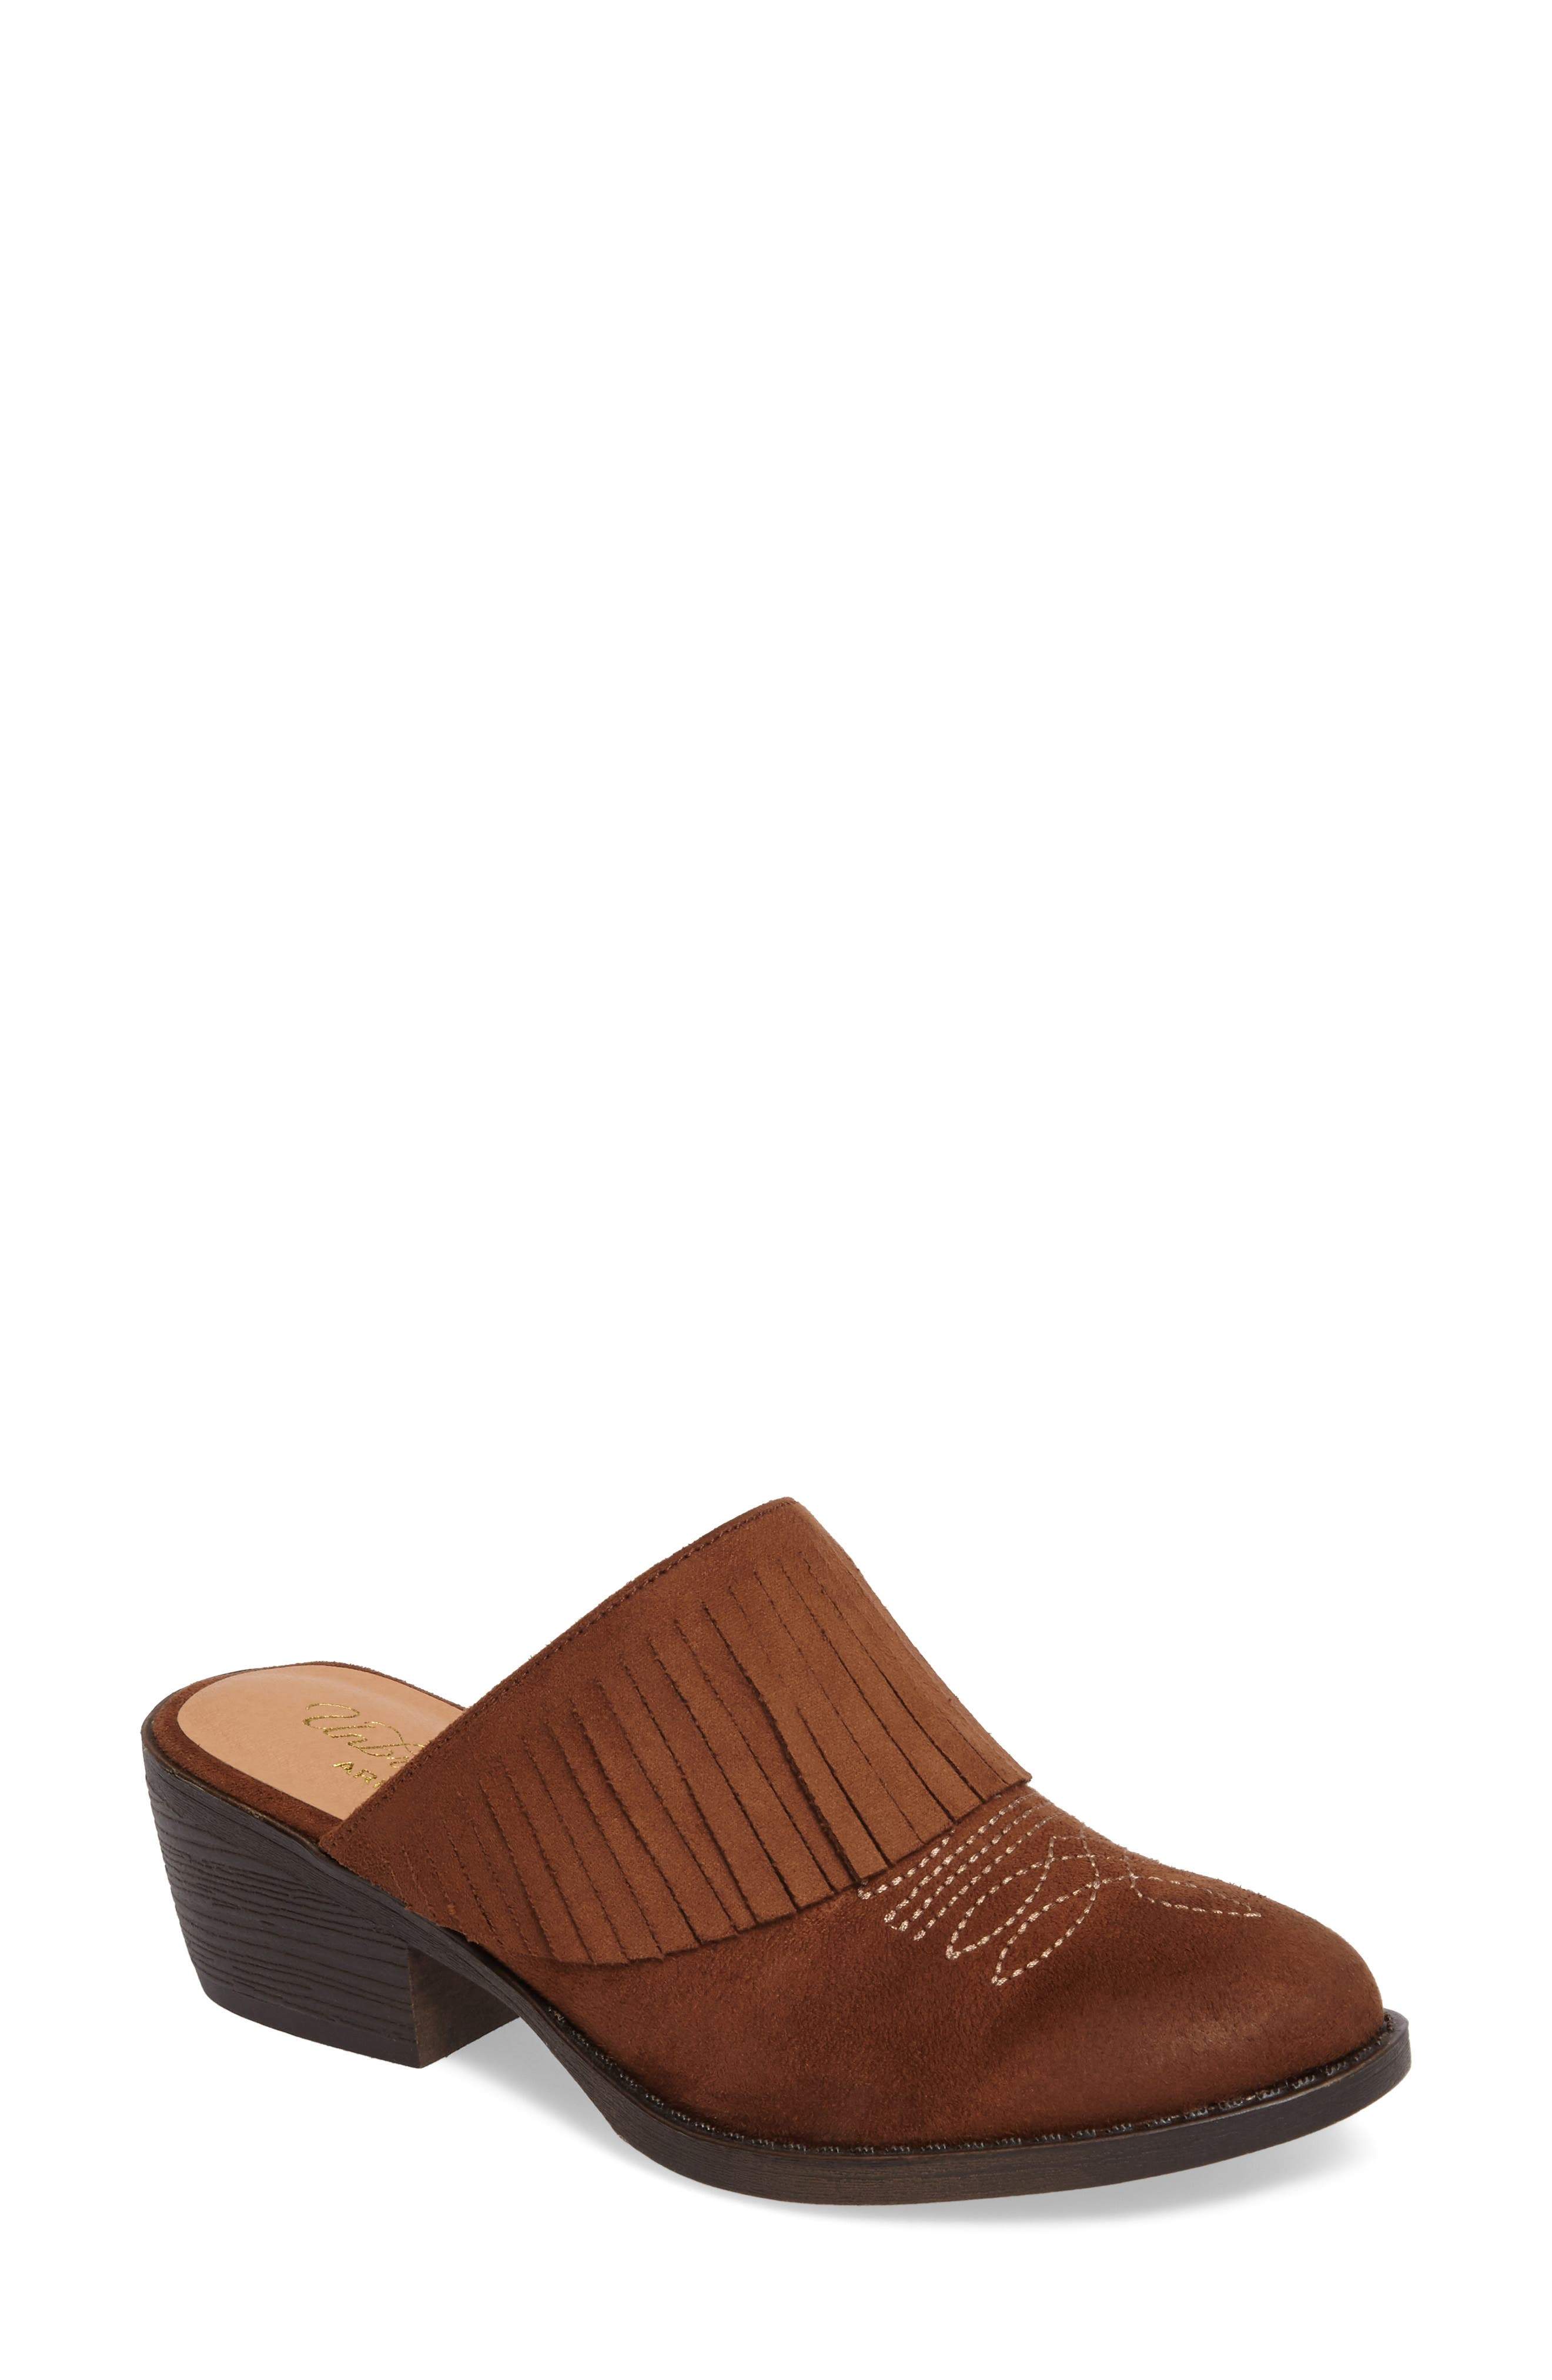 Unbridled Shirley Mule,                             Main thumbnail 1, color,                             Whiskey Suede